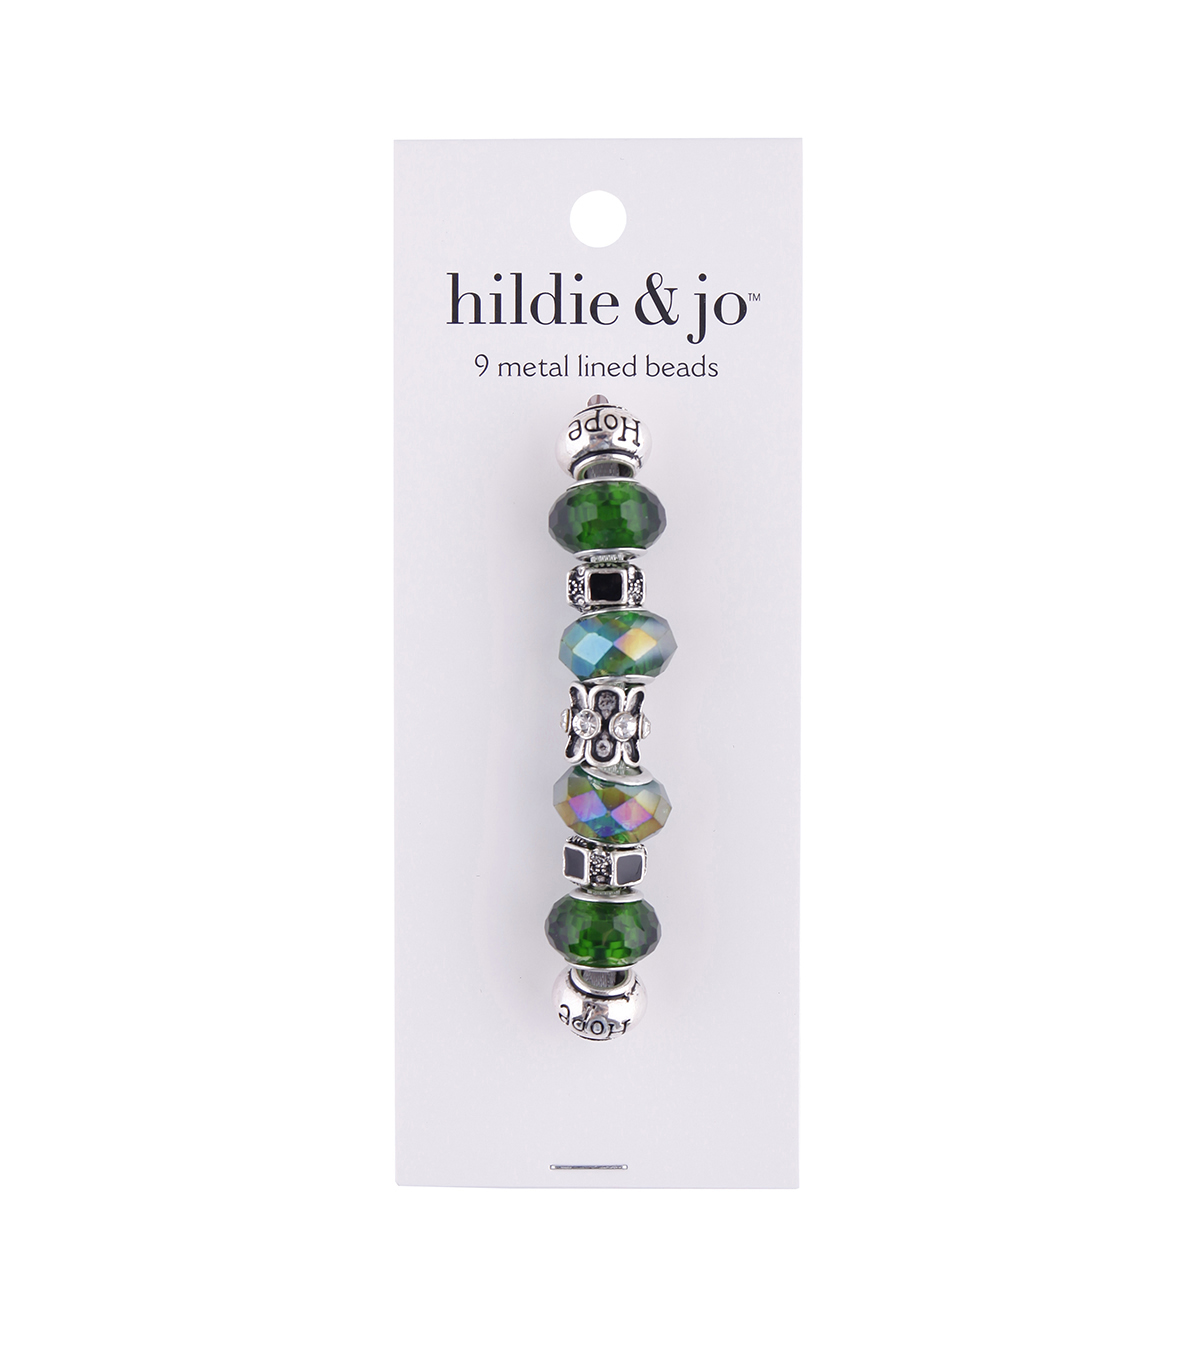 hildie & jo™ 9 pk Metal Lined Glass Beads-Black & Green